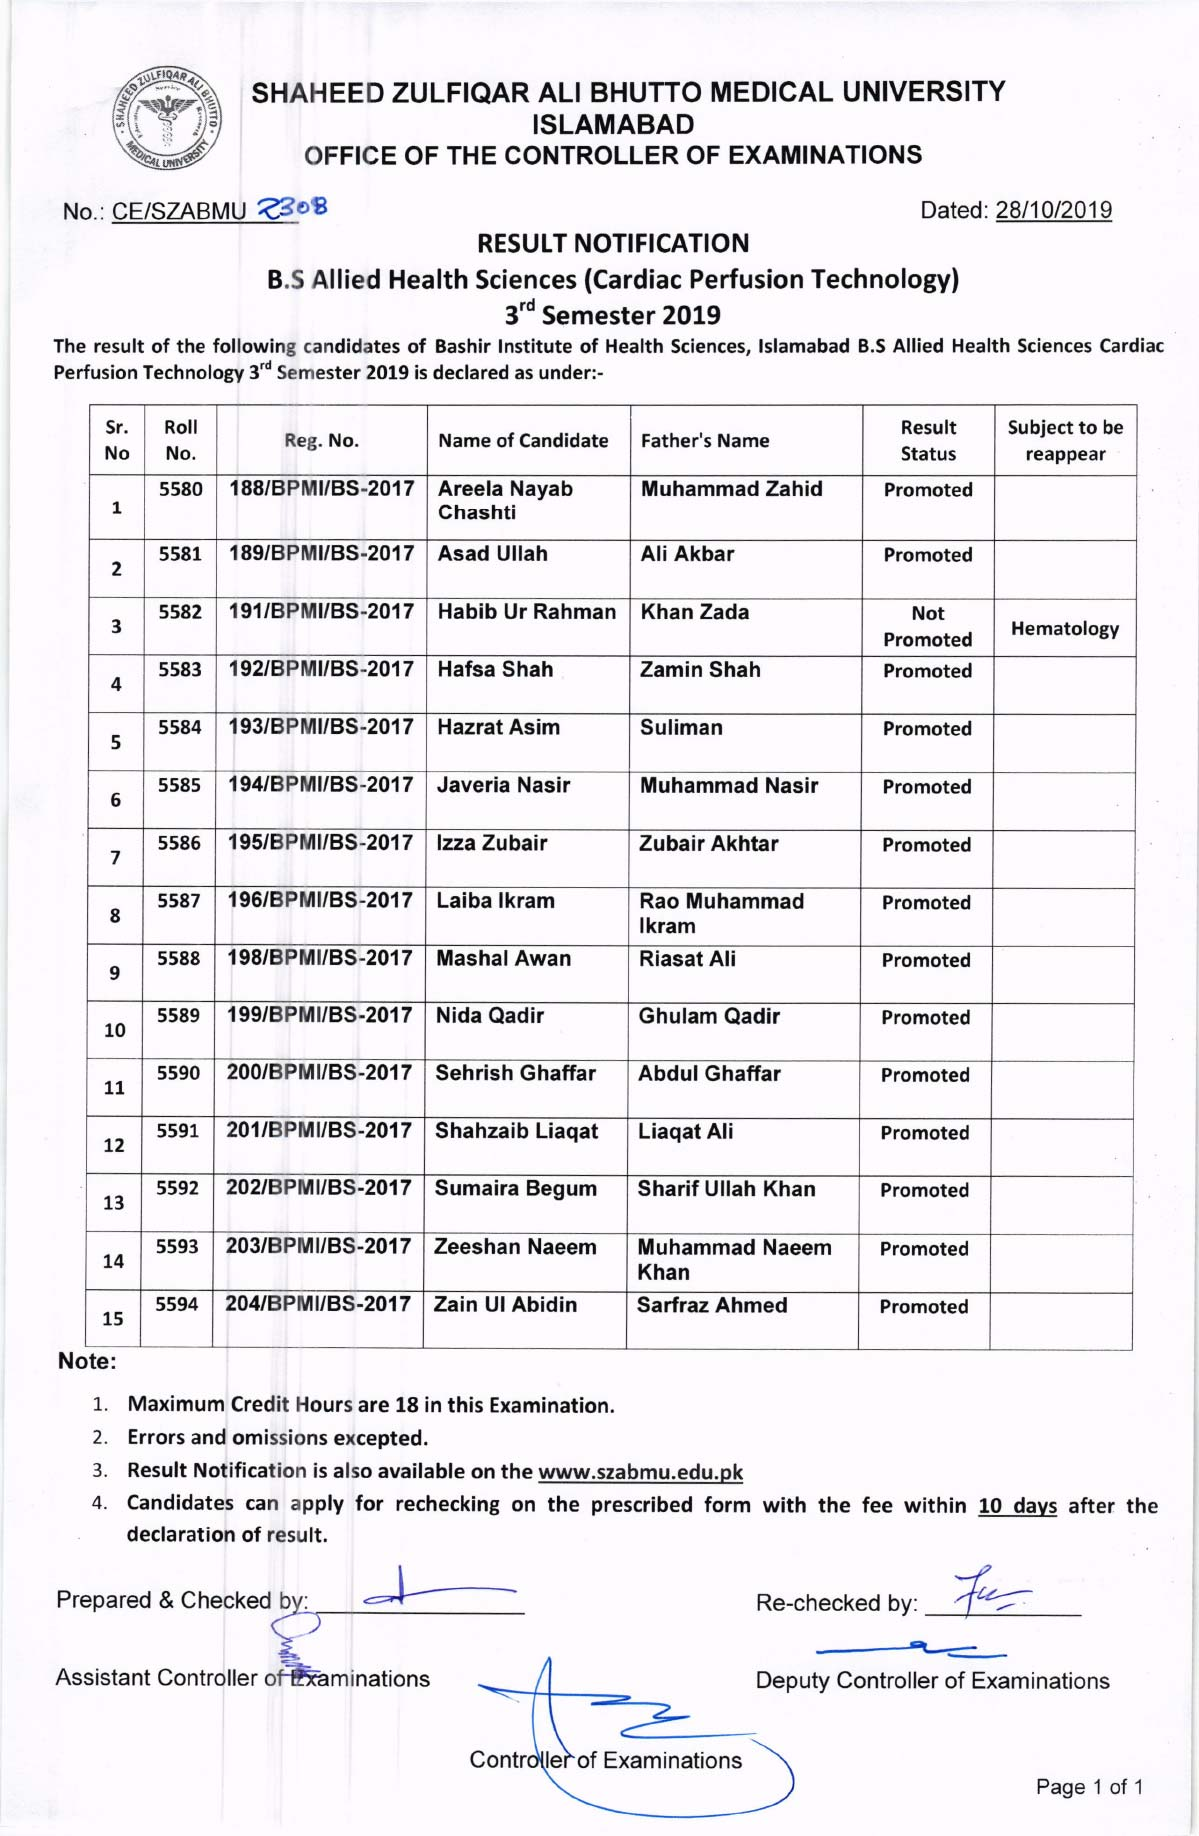 Result Notification of BS Hons (AHS) 3rd Semester 2019